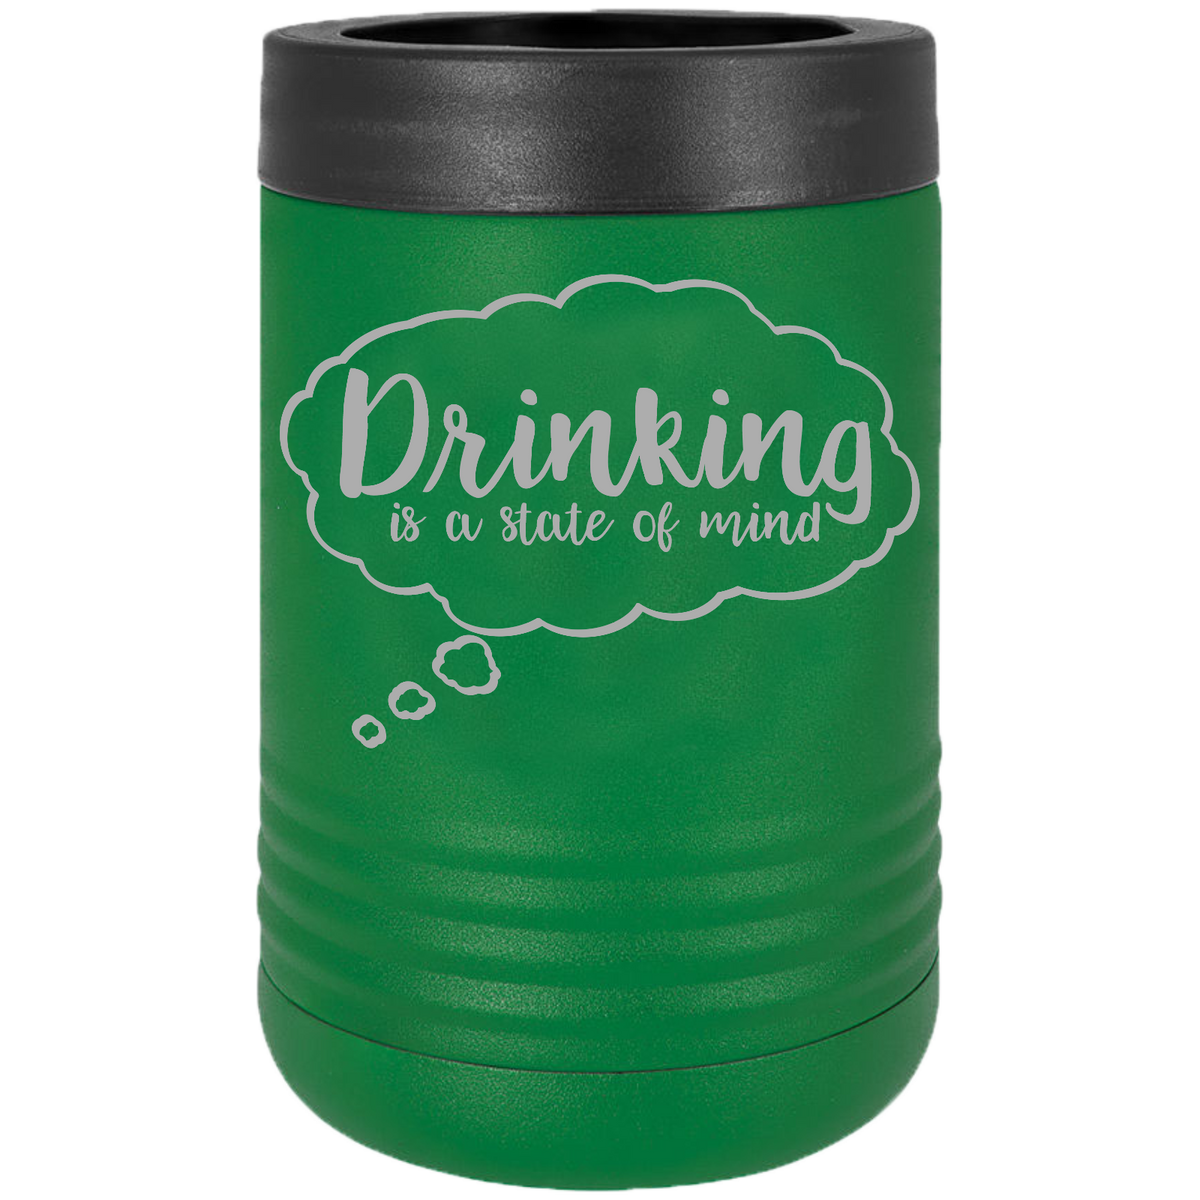 Drinking is a state of mind - Engraved Beverage Holder